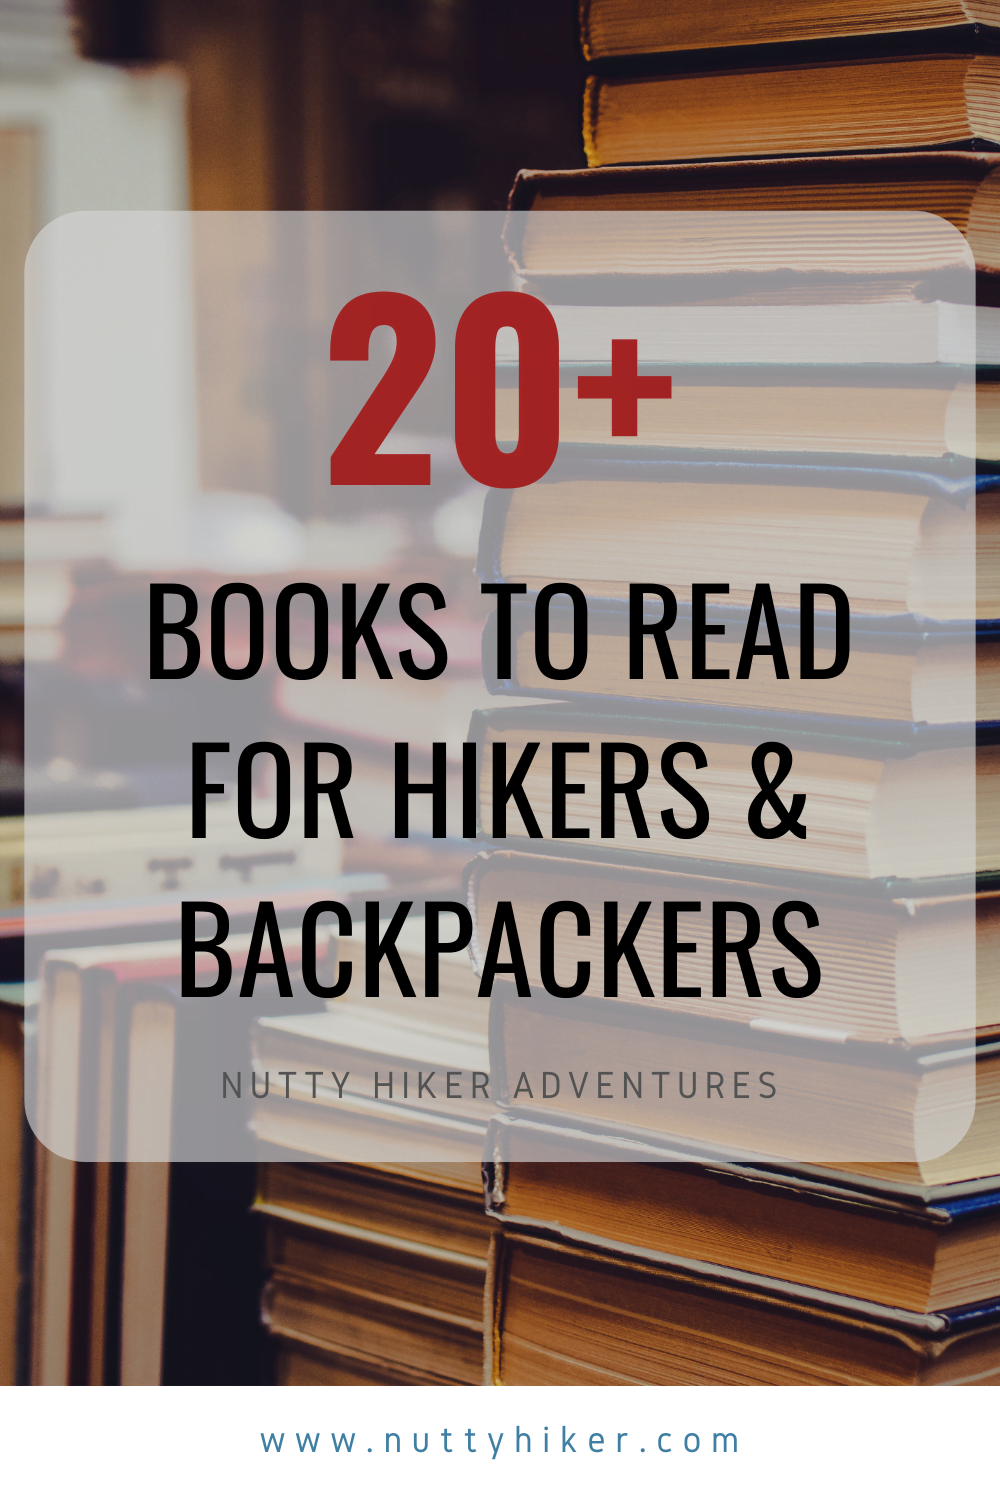 Big Ole List of Books for Hikers & Backpackers